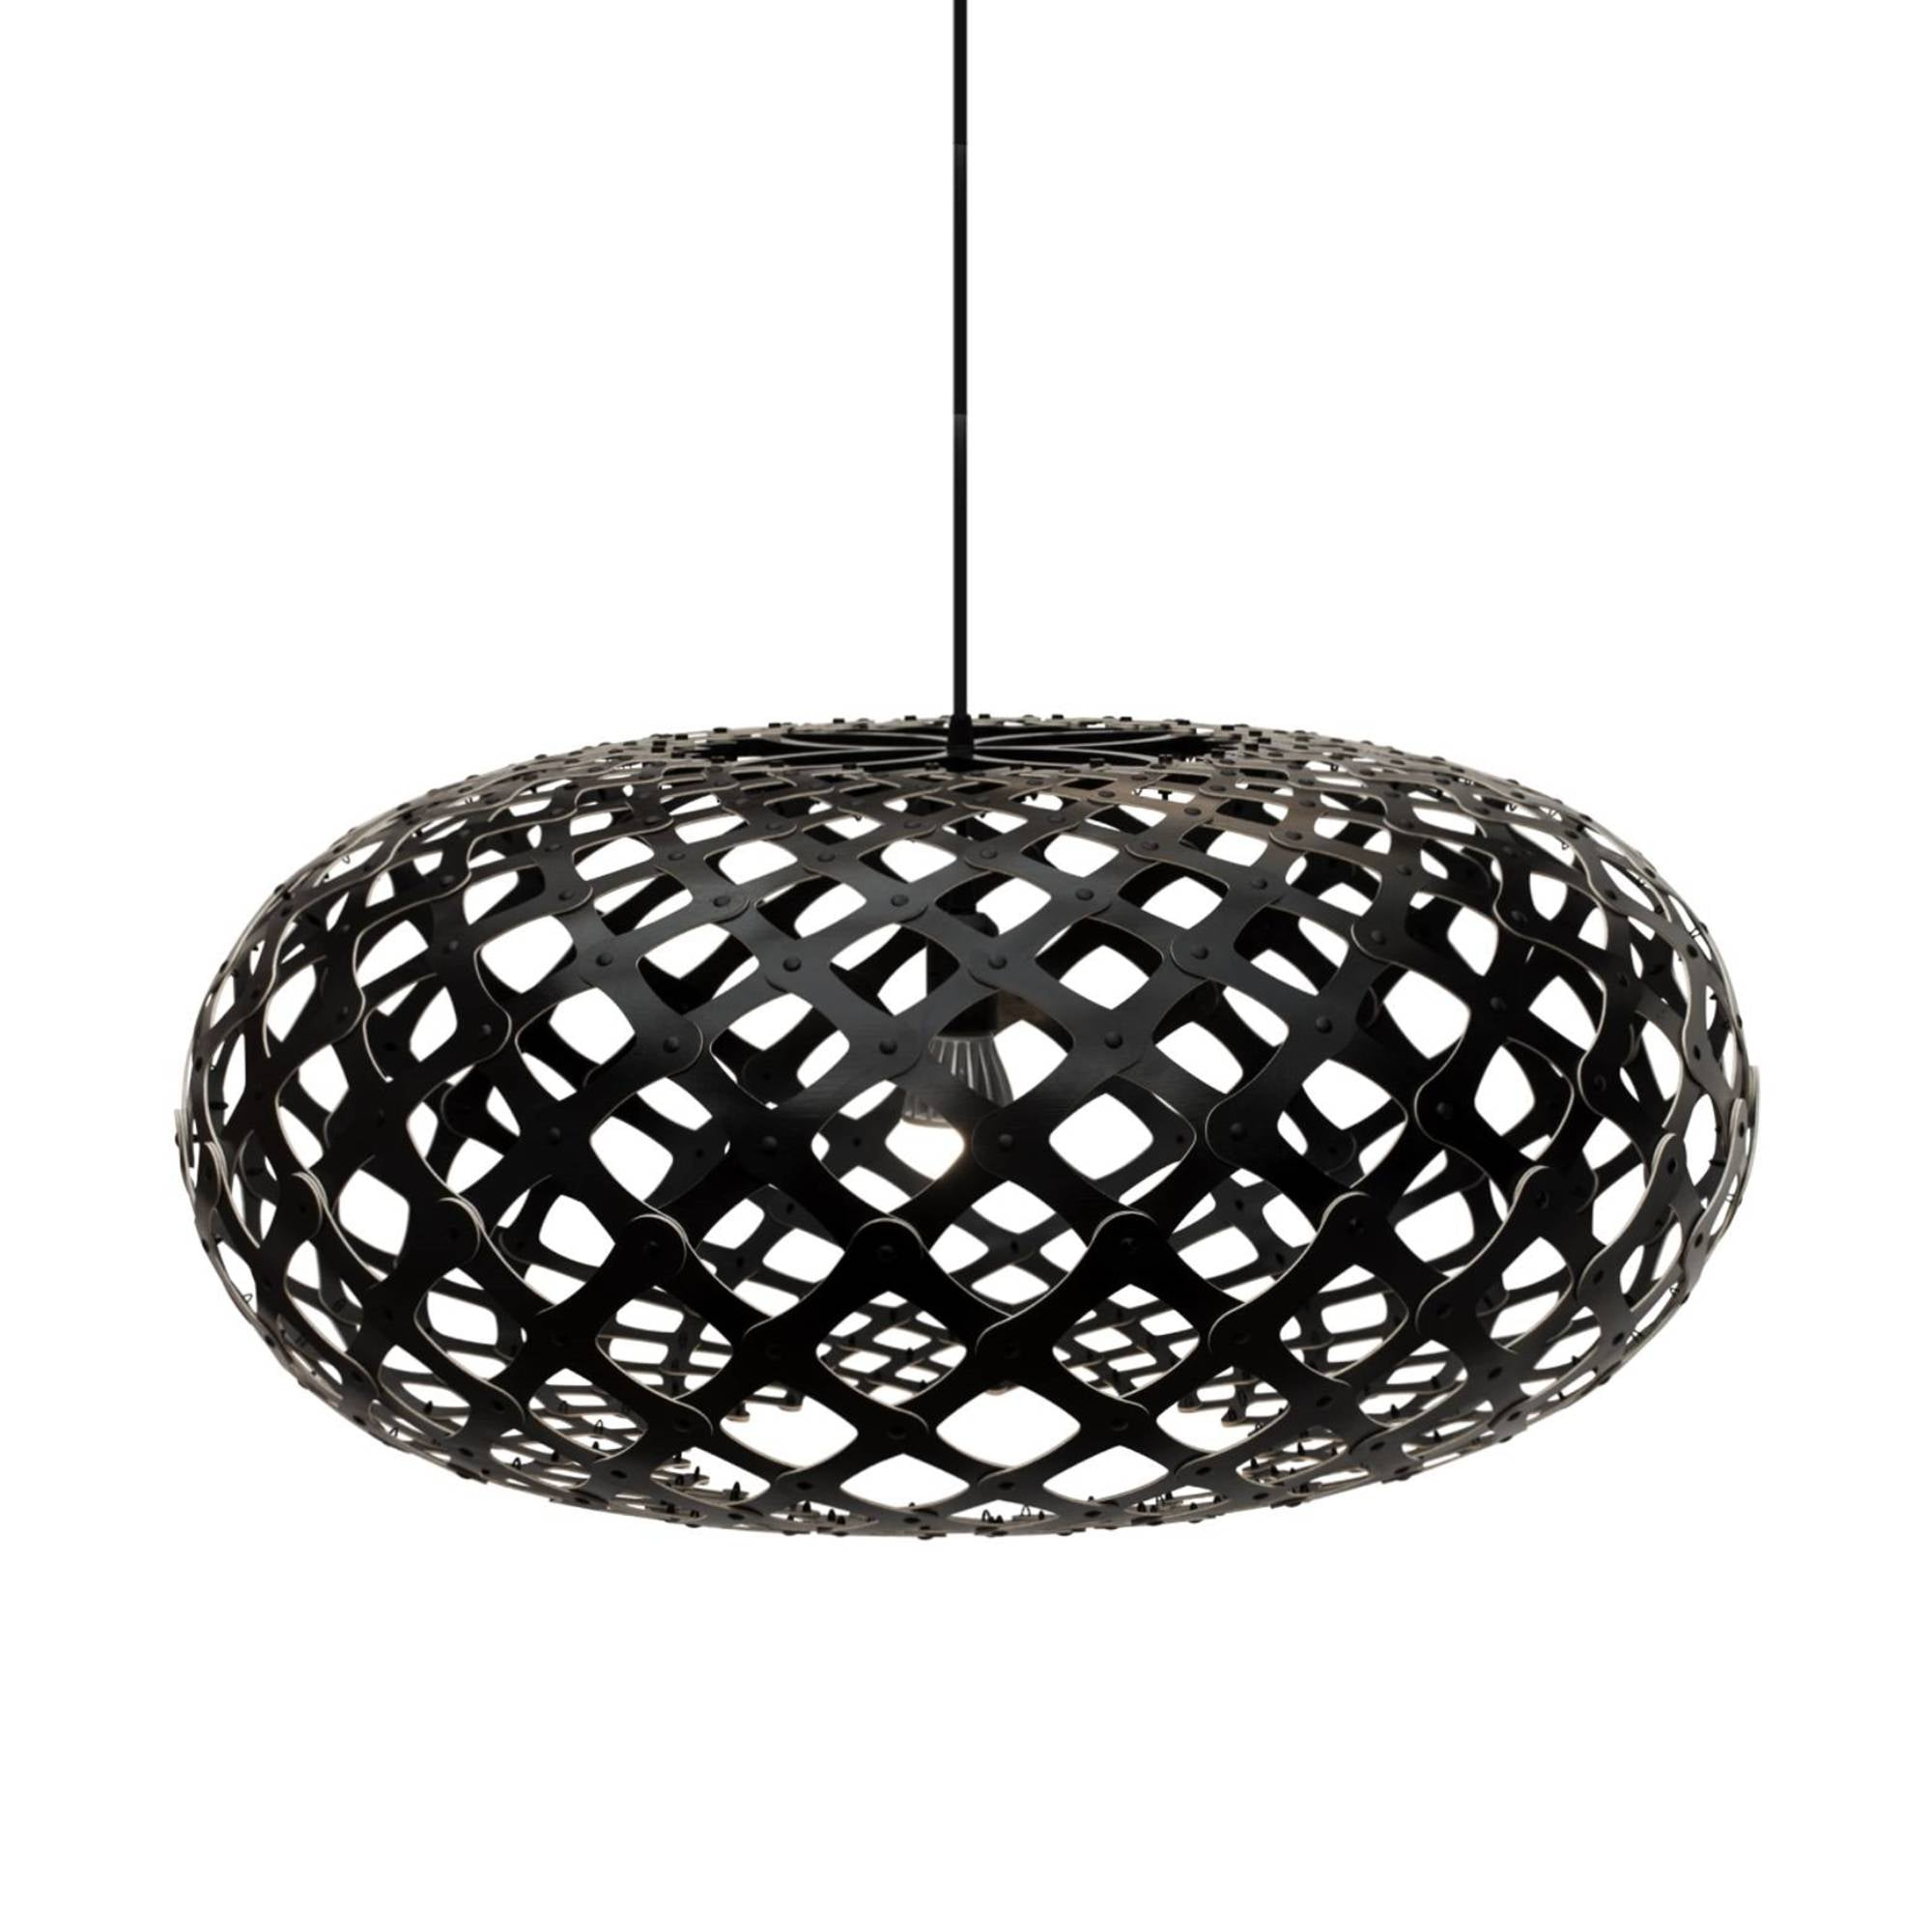 Kina Pendant Light: 800 + Black Two Sides